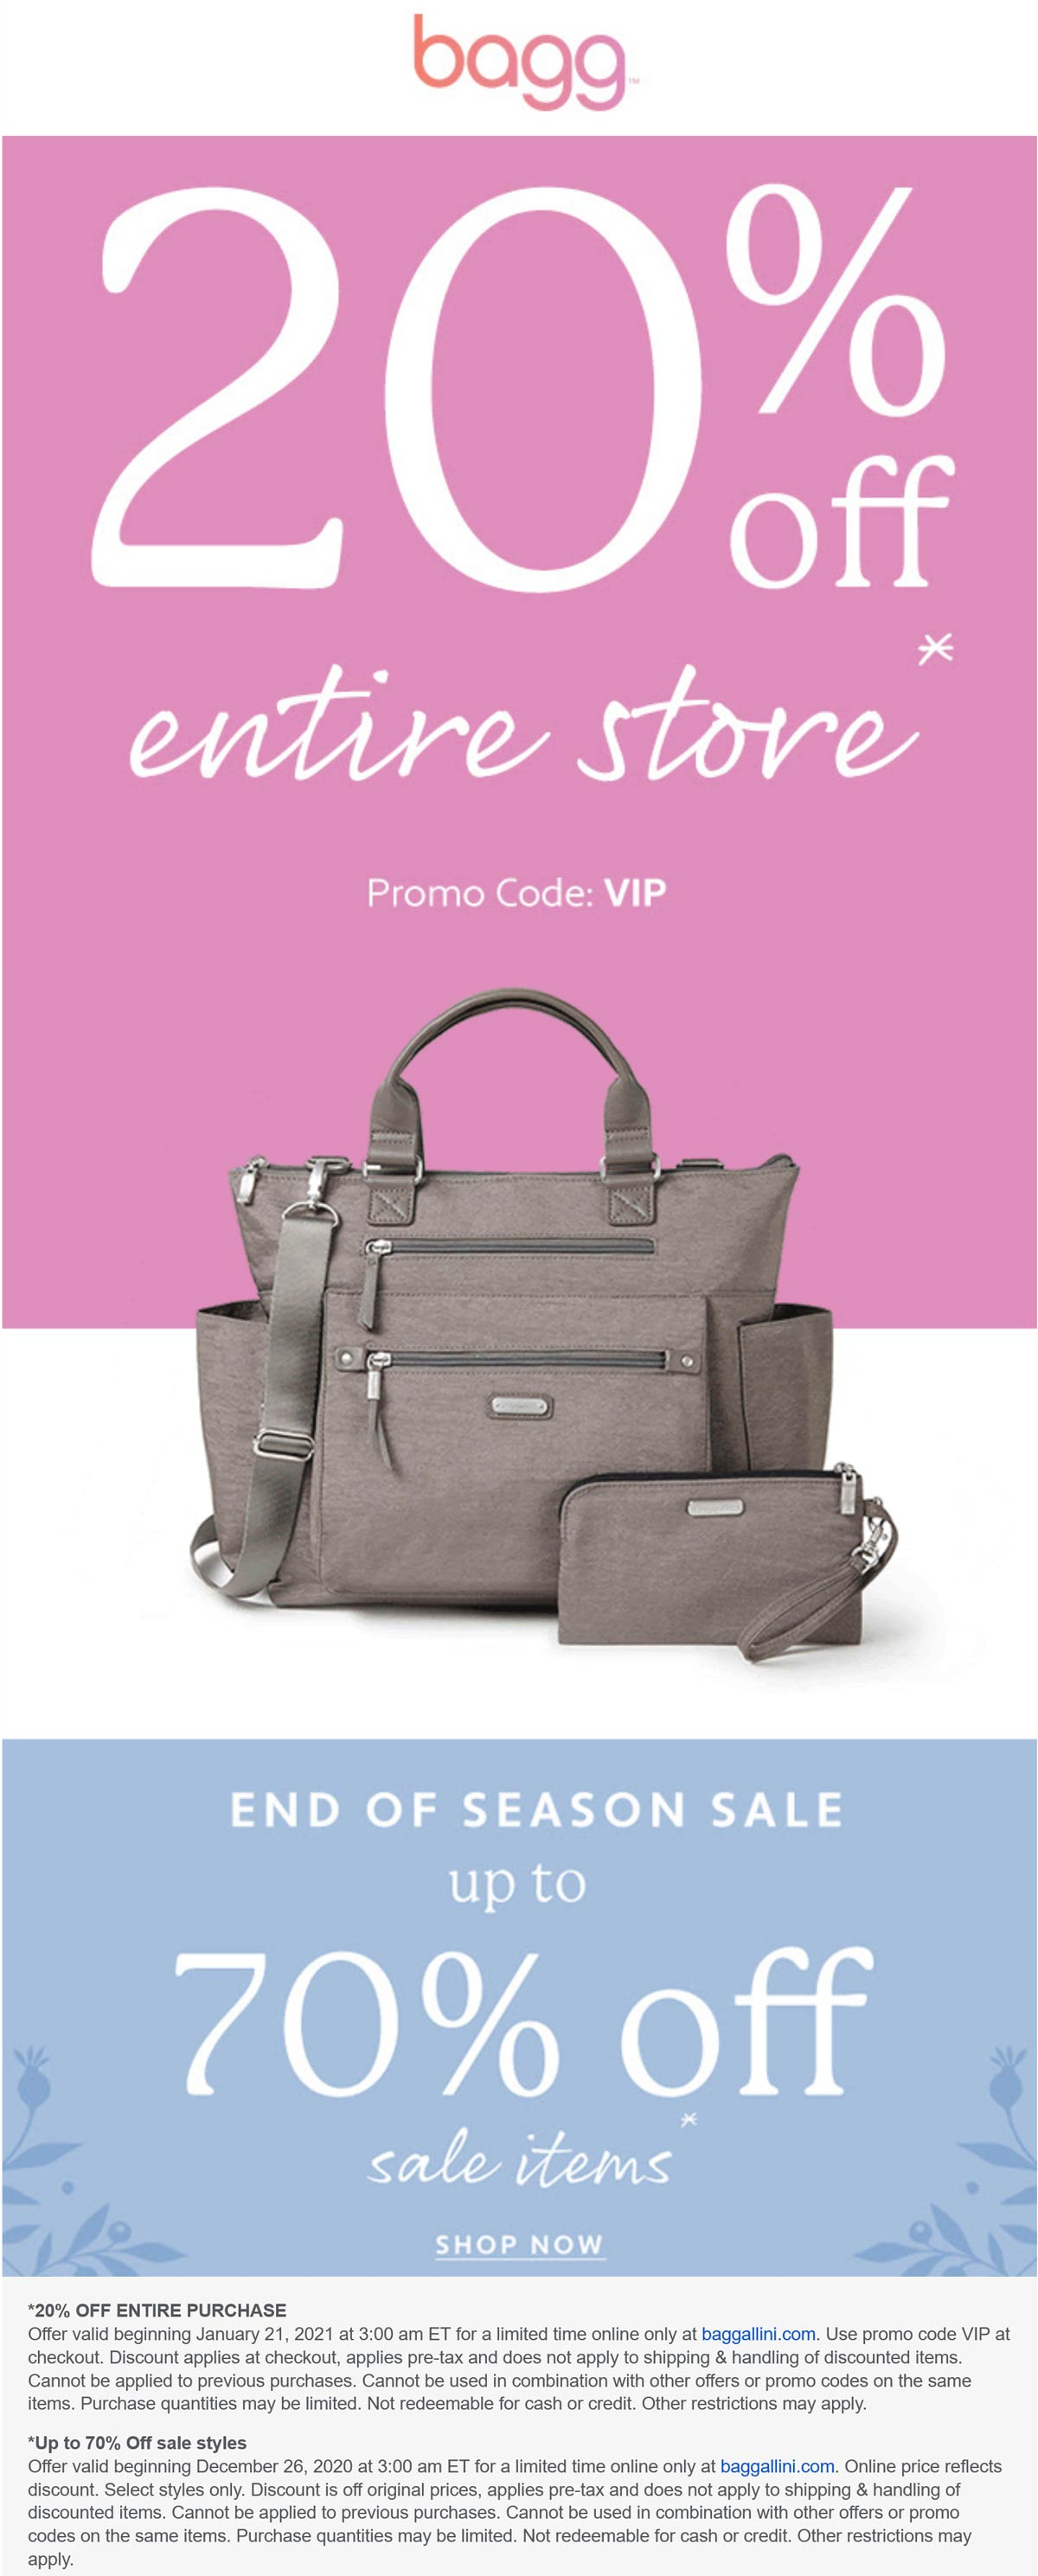 Baggallini stores Coupon  20% off everything at Baggallini via promo code VIP #baggallini